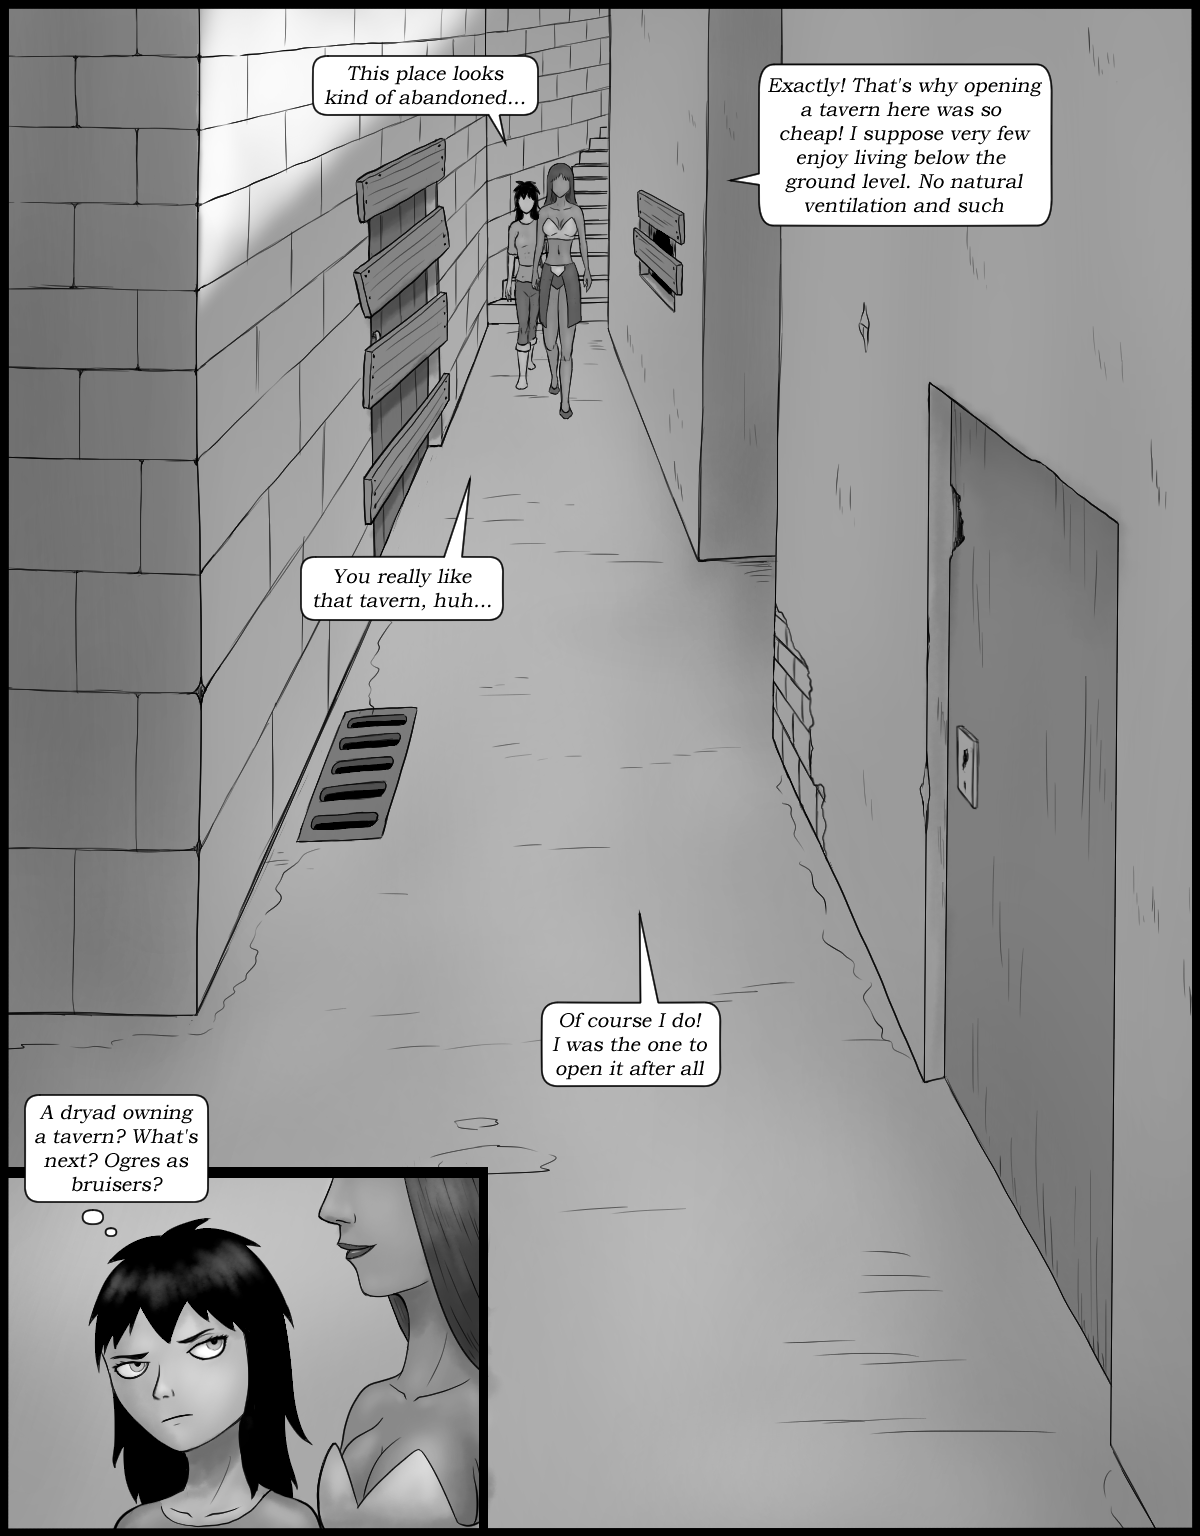 Page 33 - Below the ground level